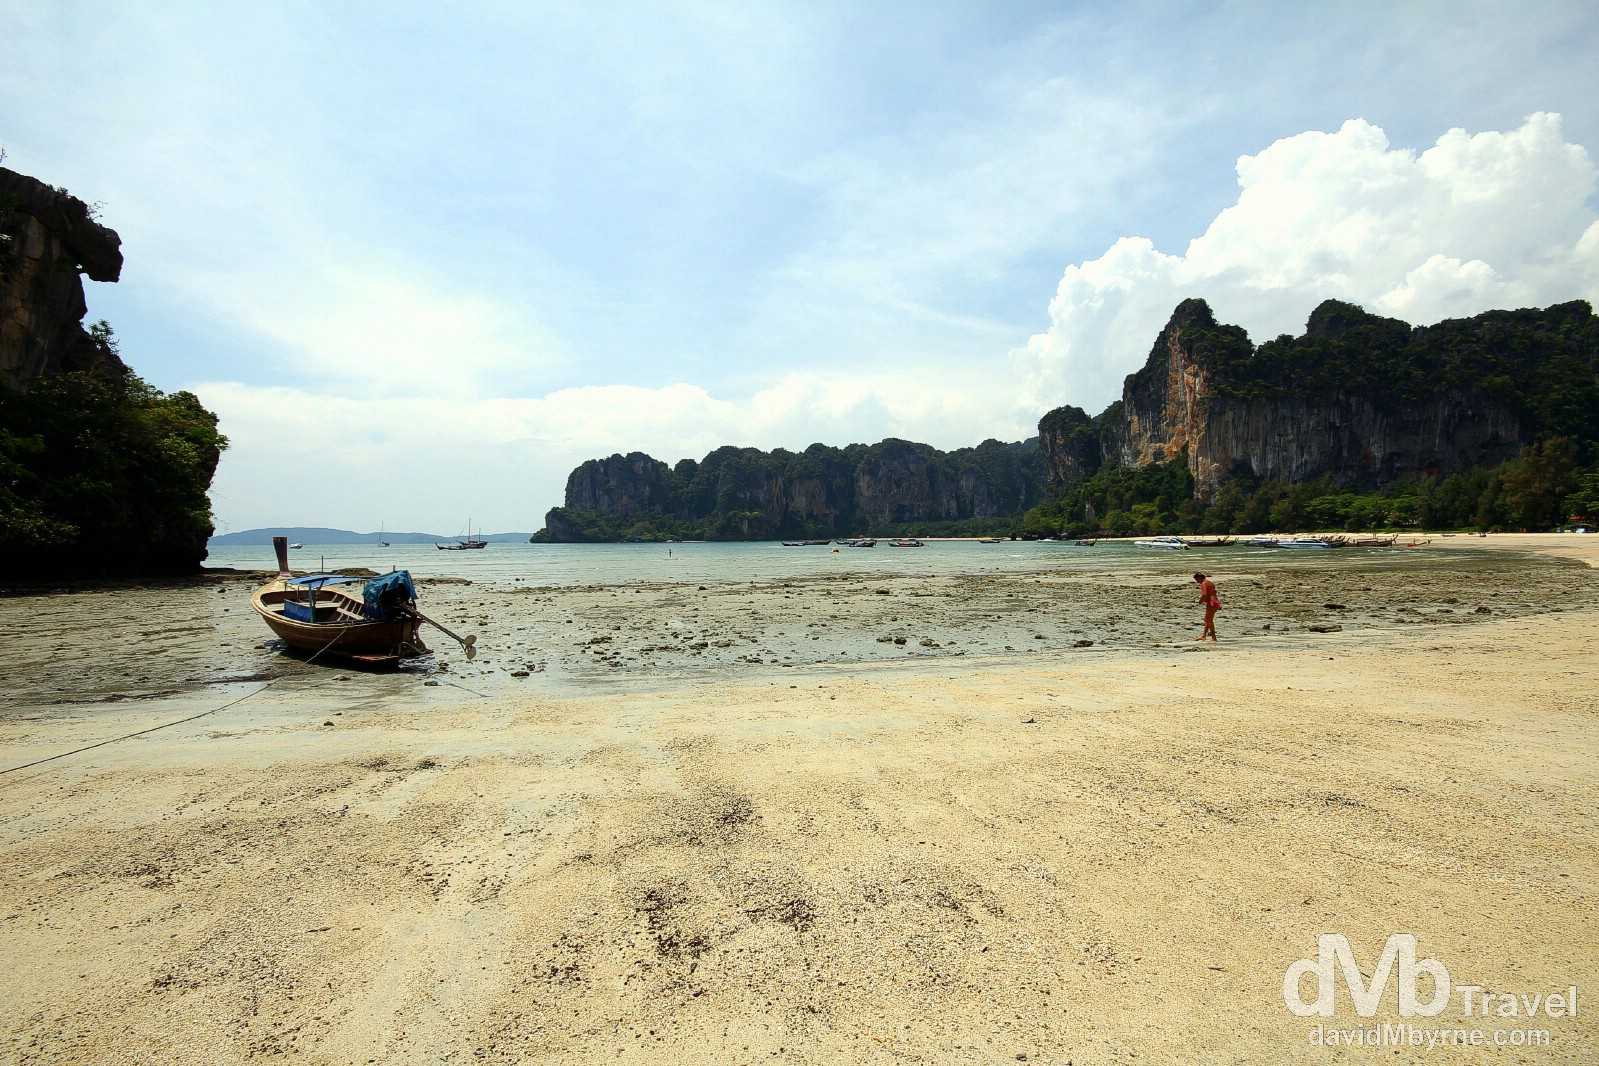 Low tide on Hat Rai Leh West Beach, Krabi, Thailand. March 19th 2012.